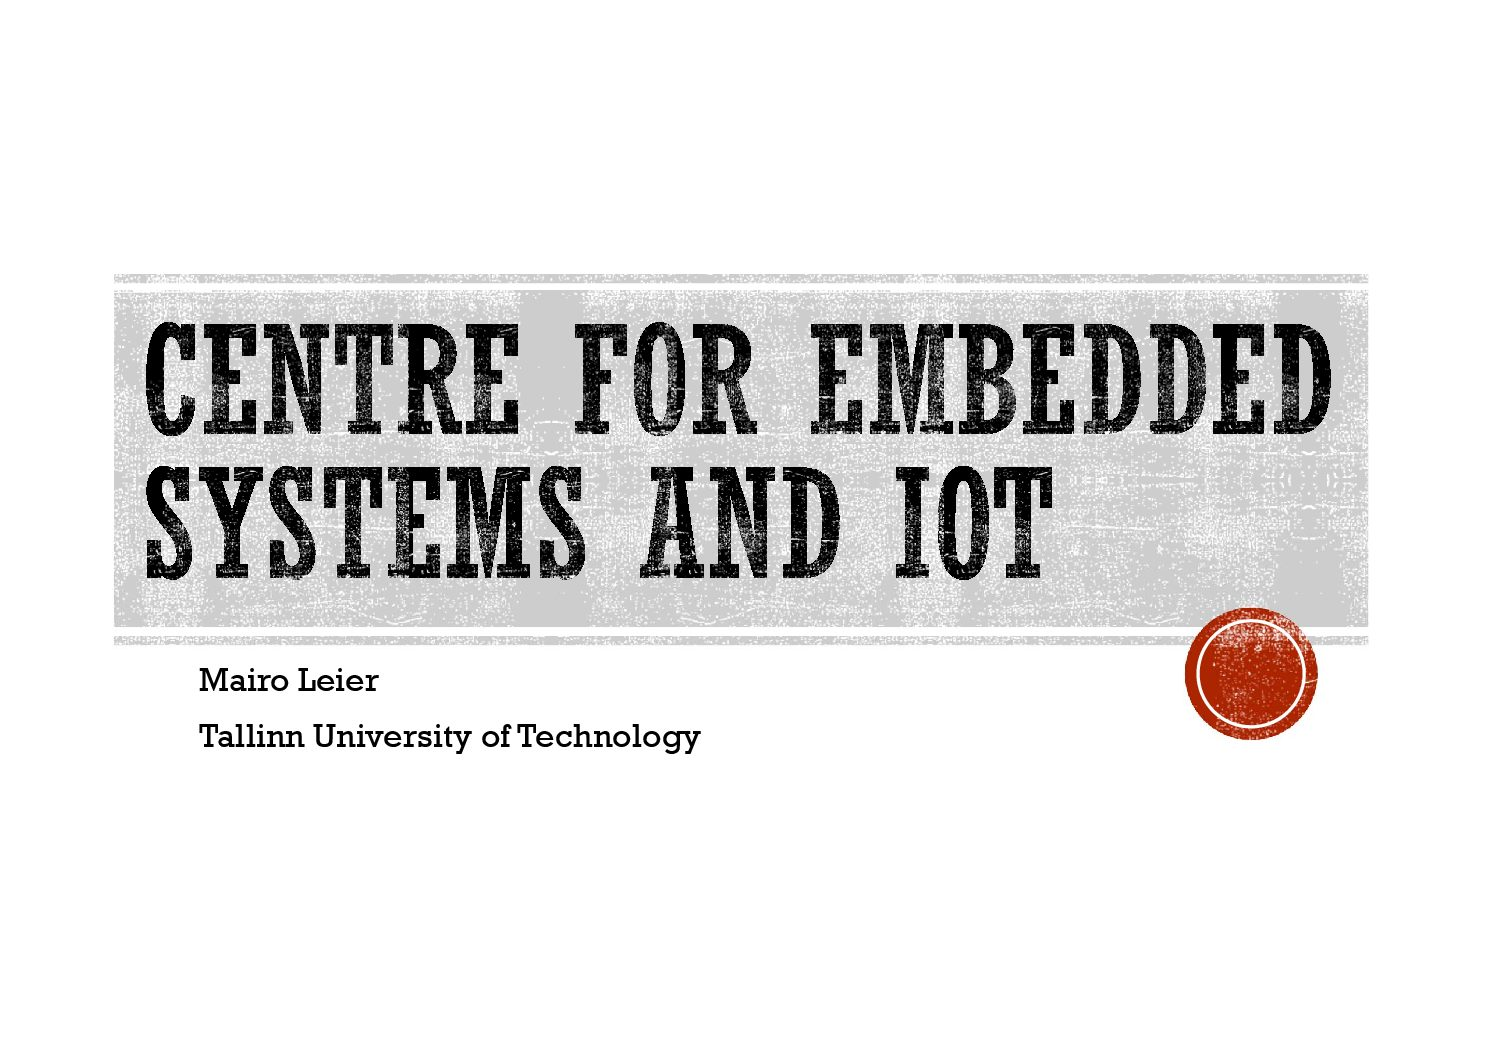 Mairo Leier – TTU Centre for Embedded Systems and IoT